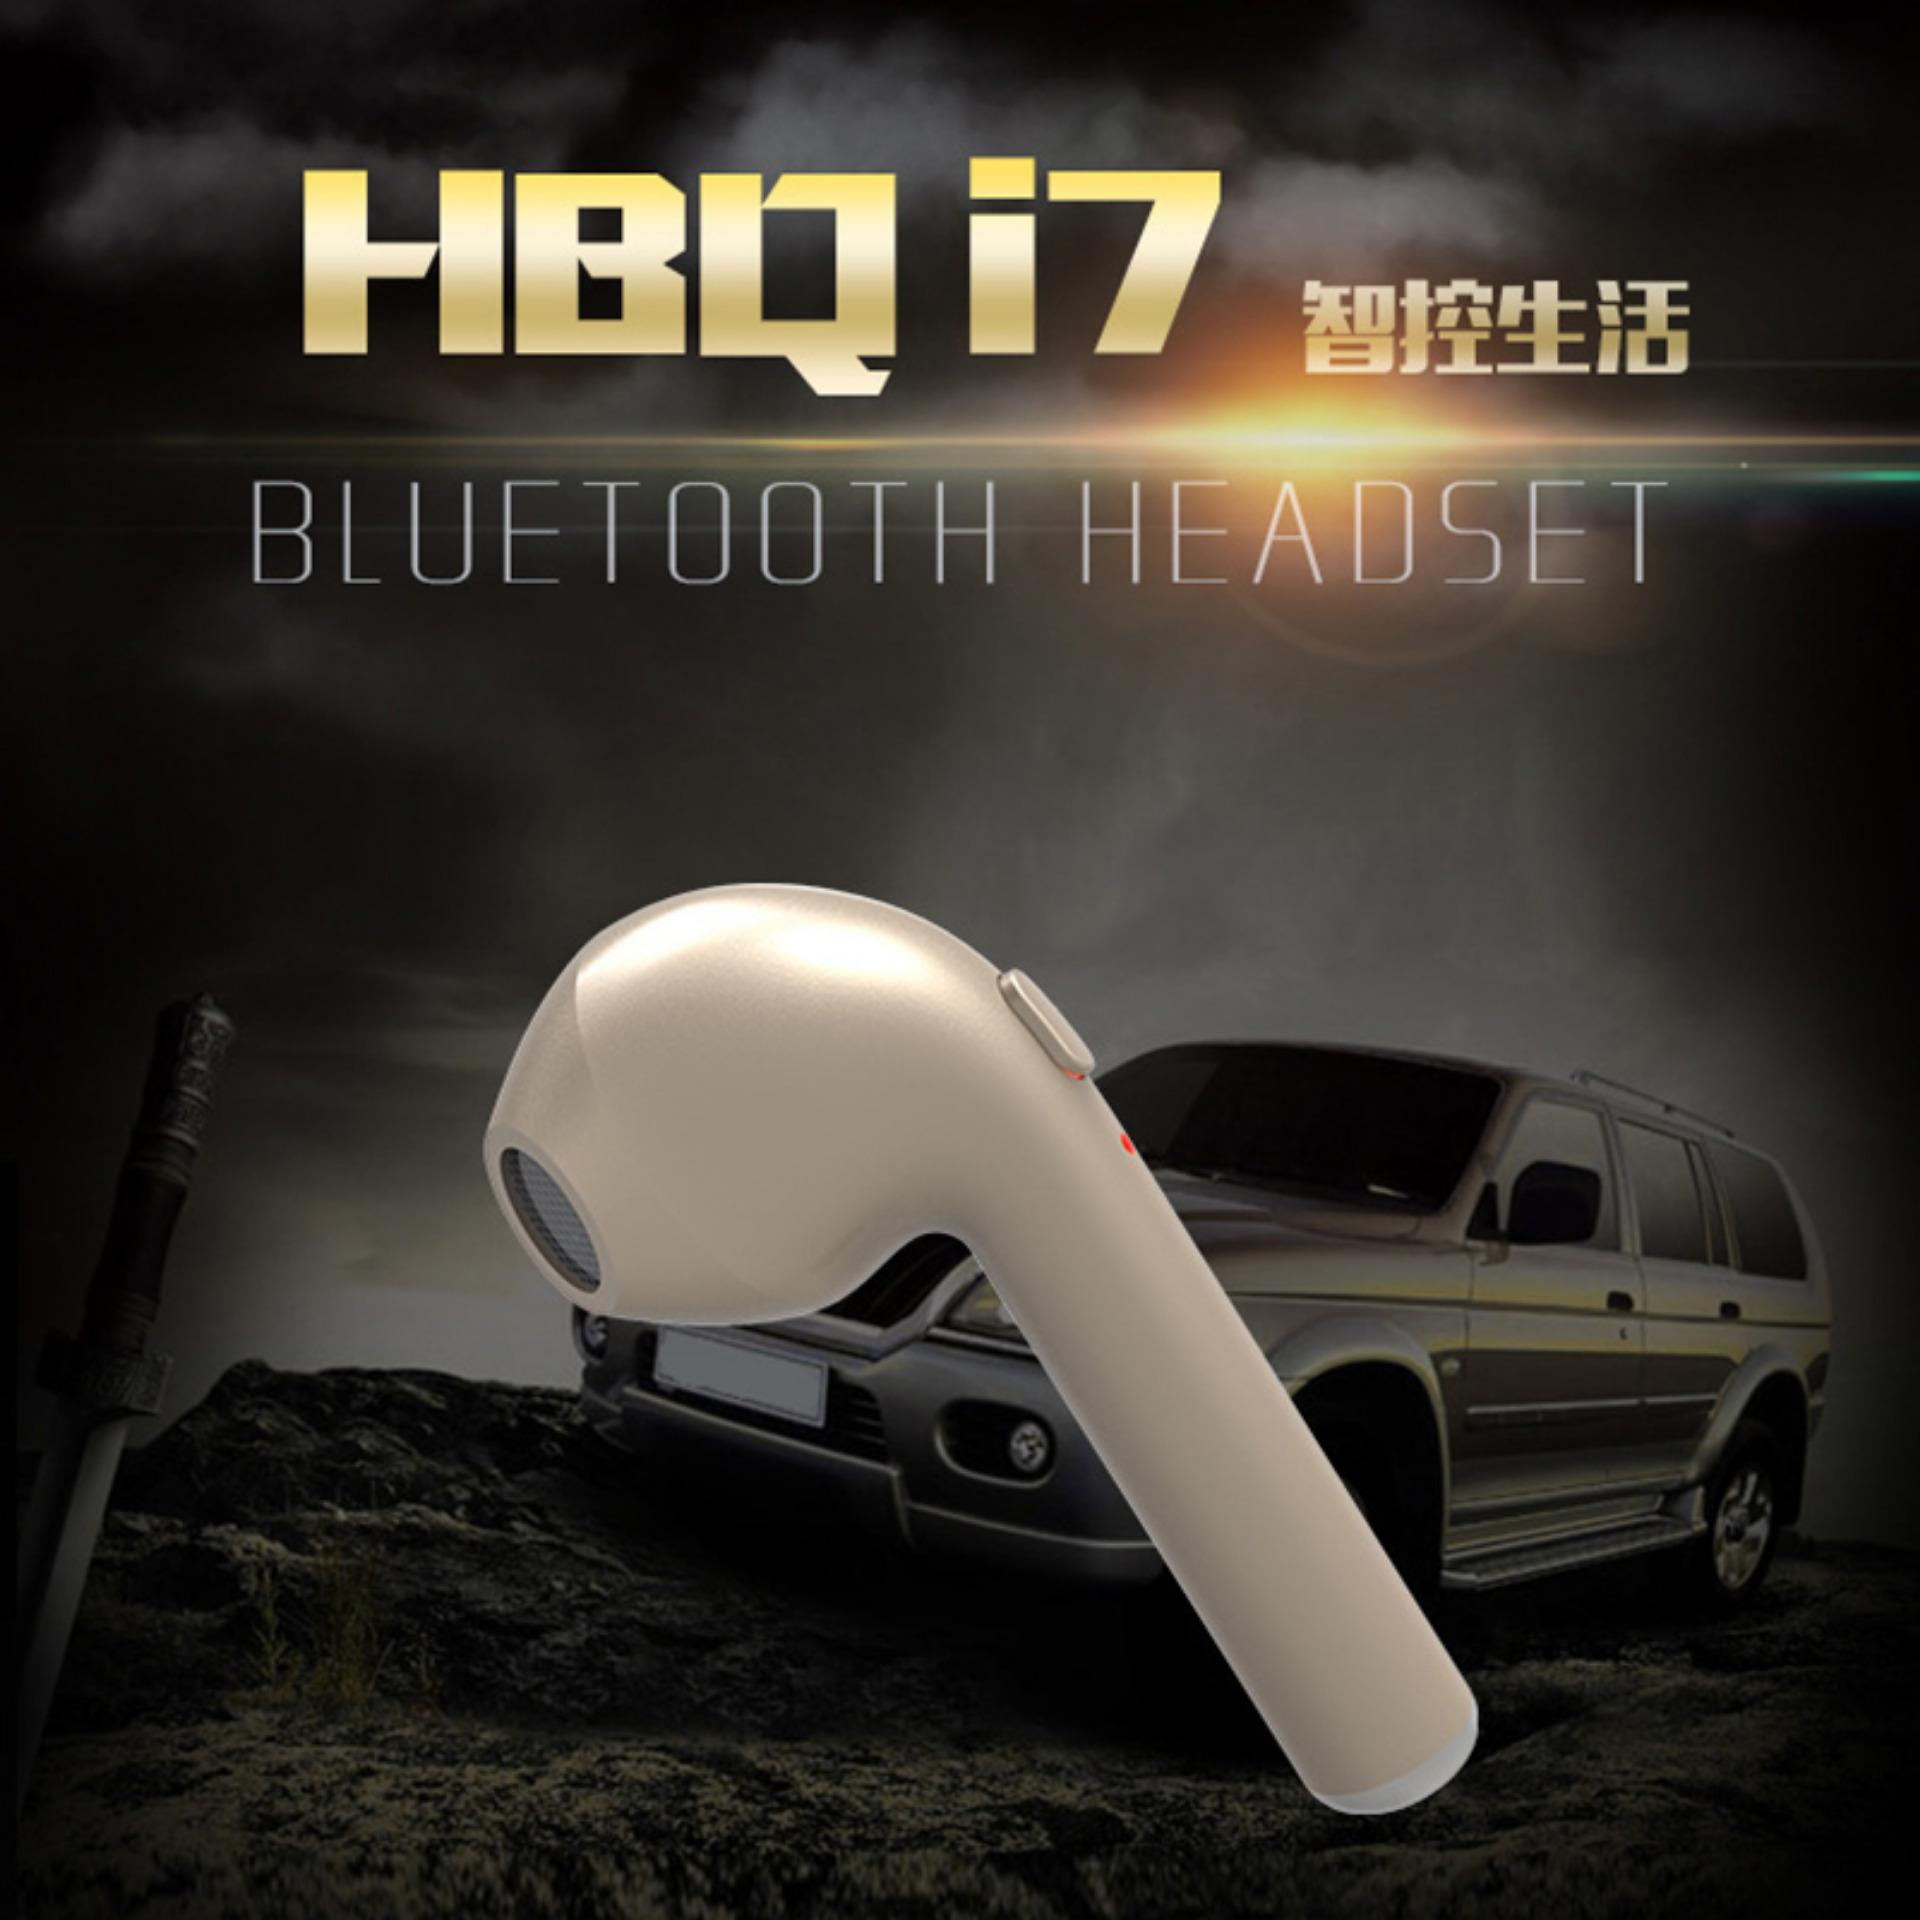 Unique Earphone HBQ I7 In-Ear Wireless Headset Bluetooth Sport Invisible Music Earbud Dengan Mikrofon Untuk iPhone Apple Samsung Xiaomi Huawei